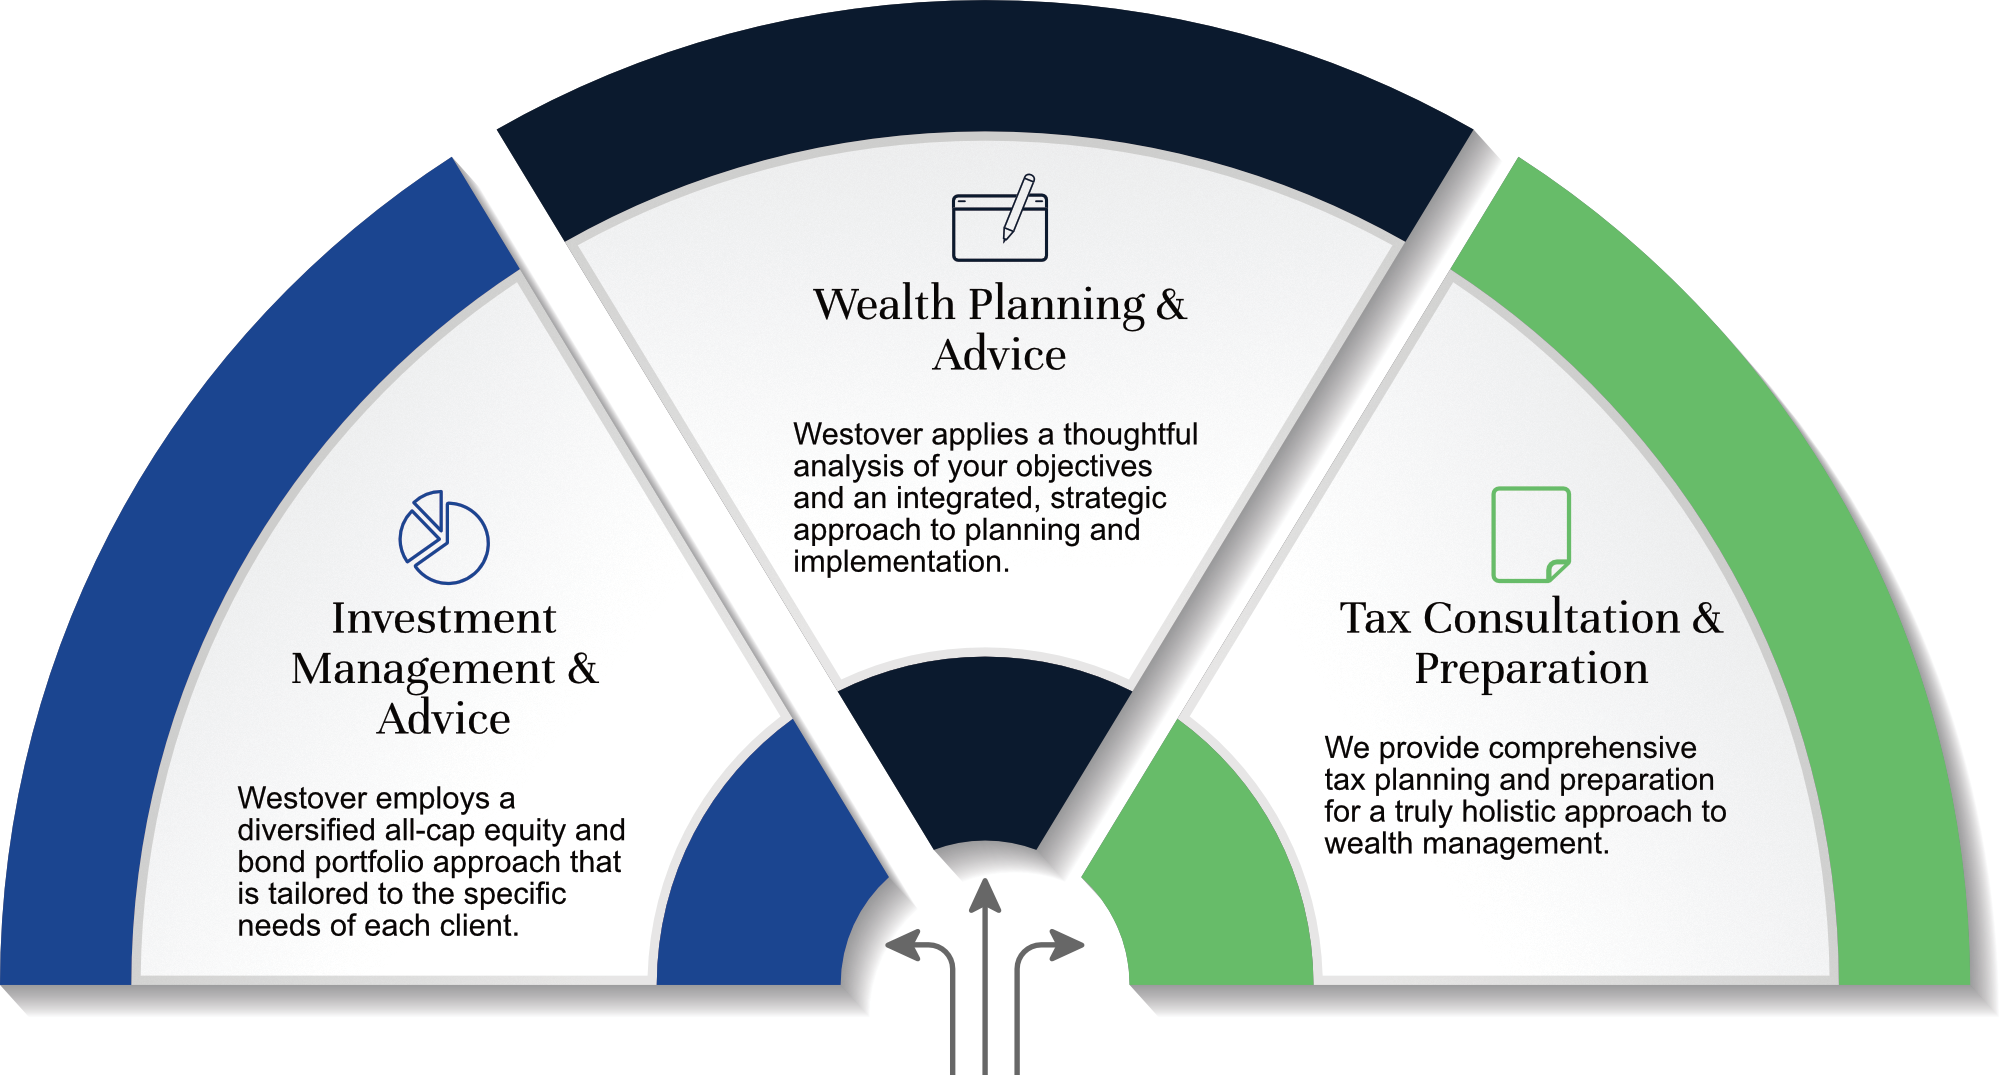 Westover Capital Advisors - Comprehensive investment management, wealth advice, and tax consultation